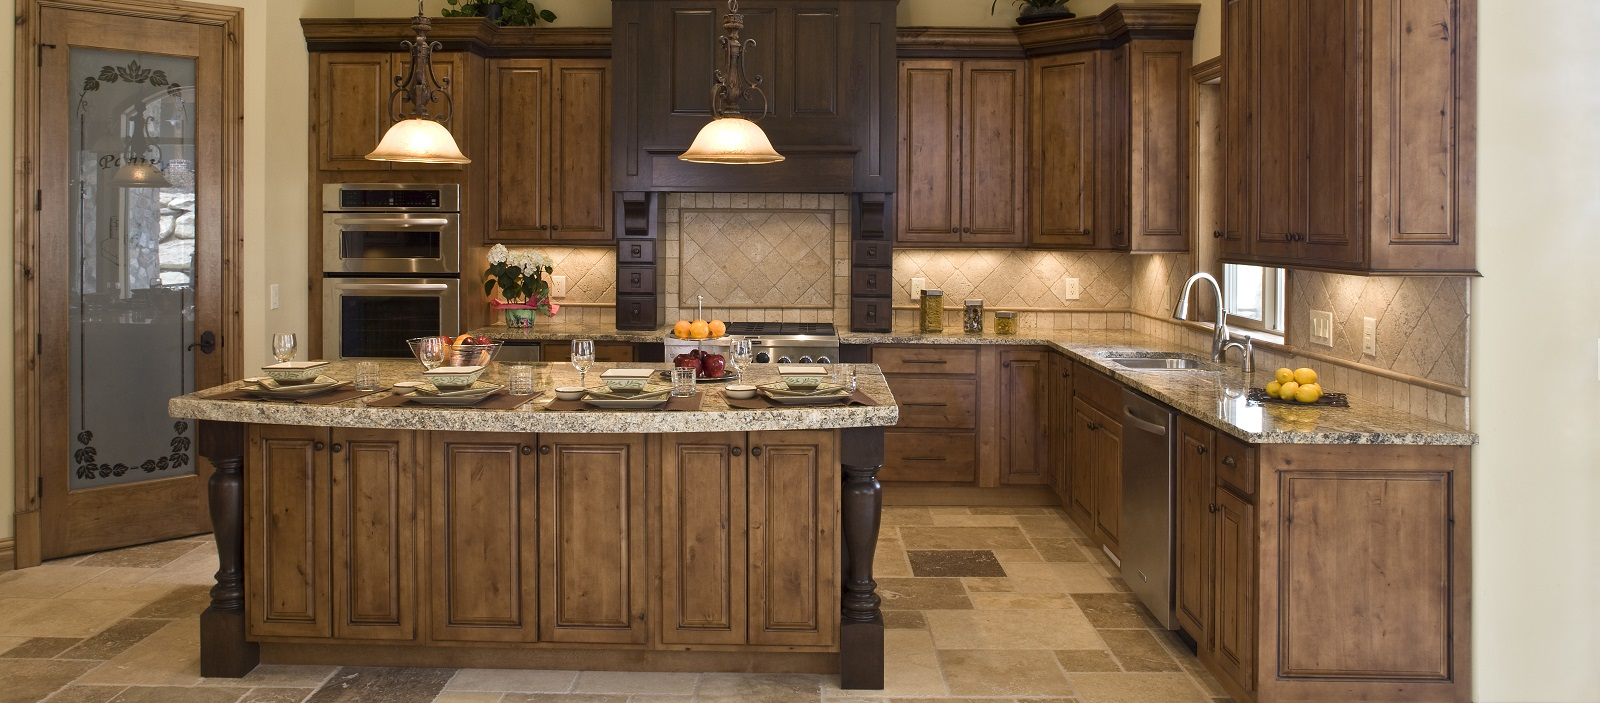 base kitchen cabinet base cabinets salt lake city utah awa kitchen cabinets 10949